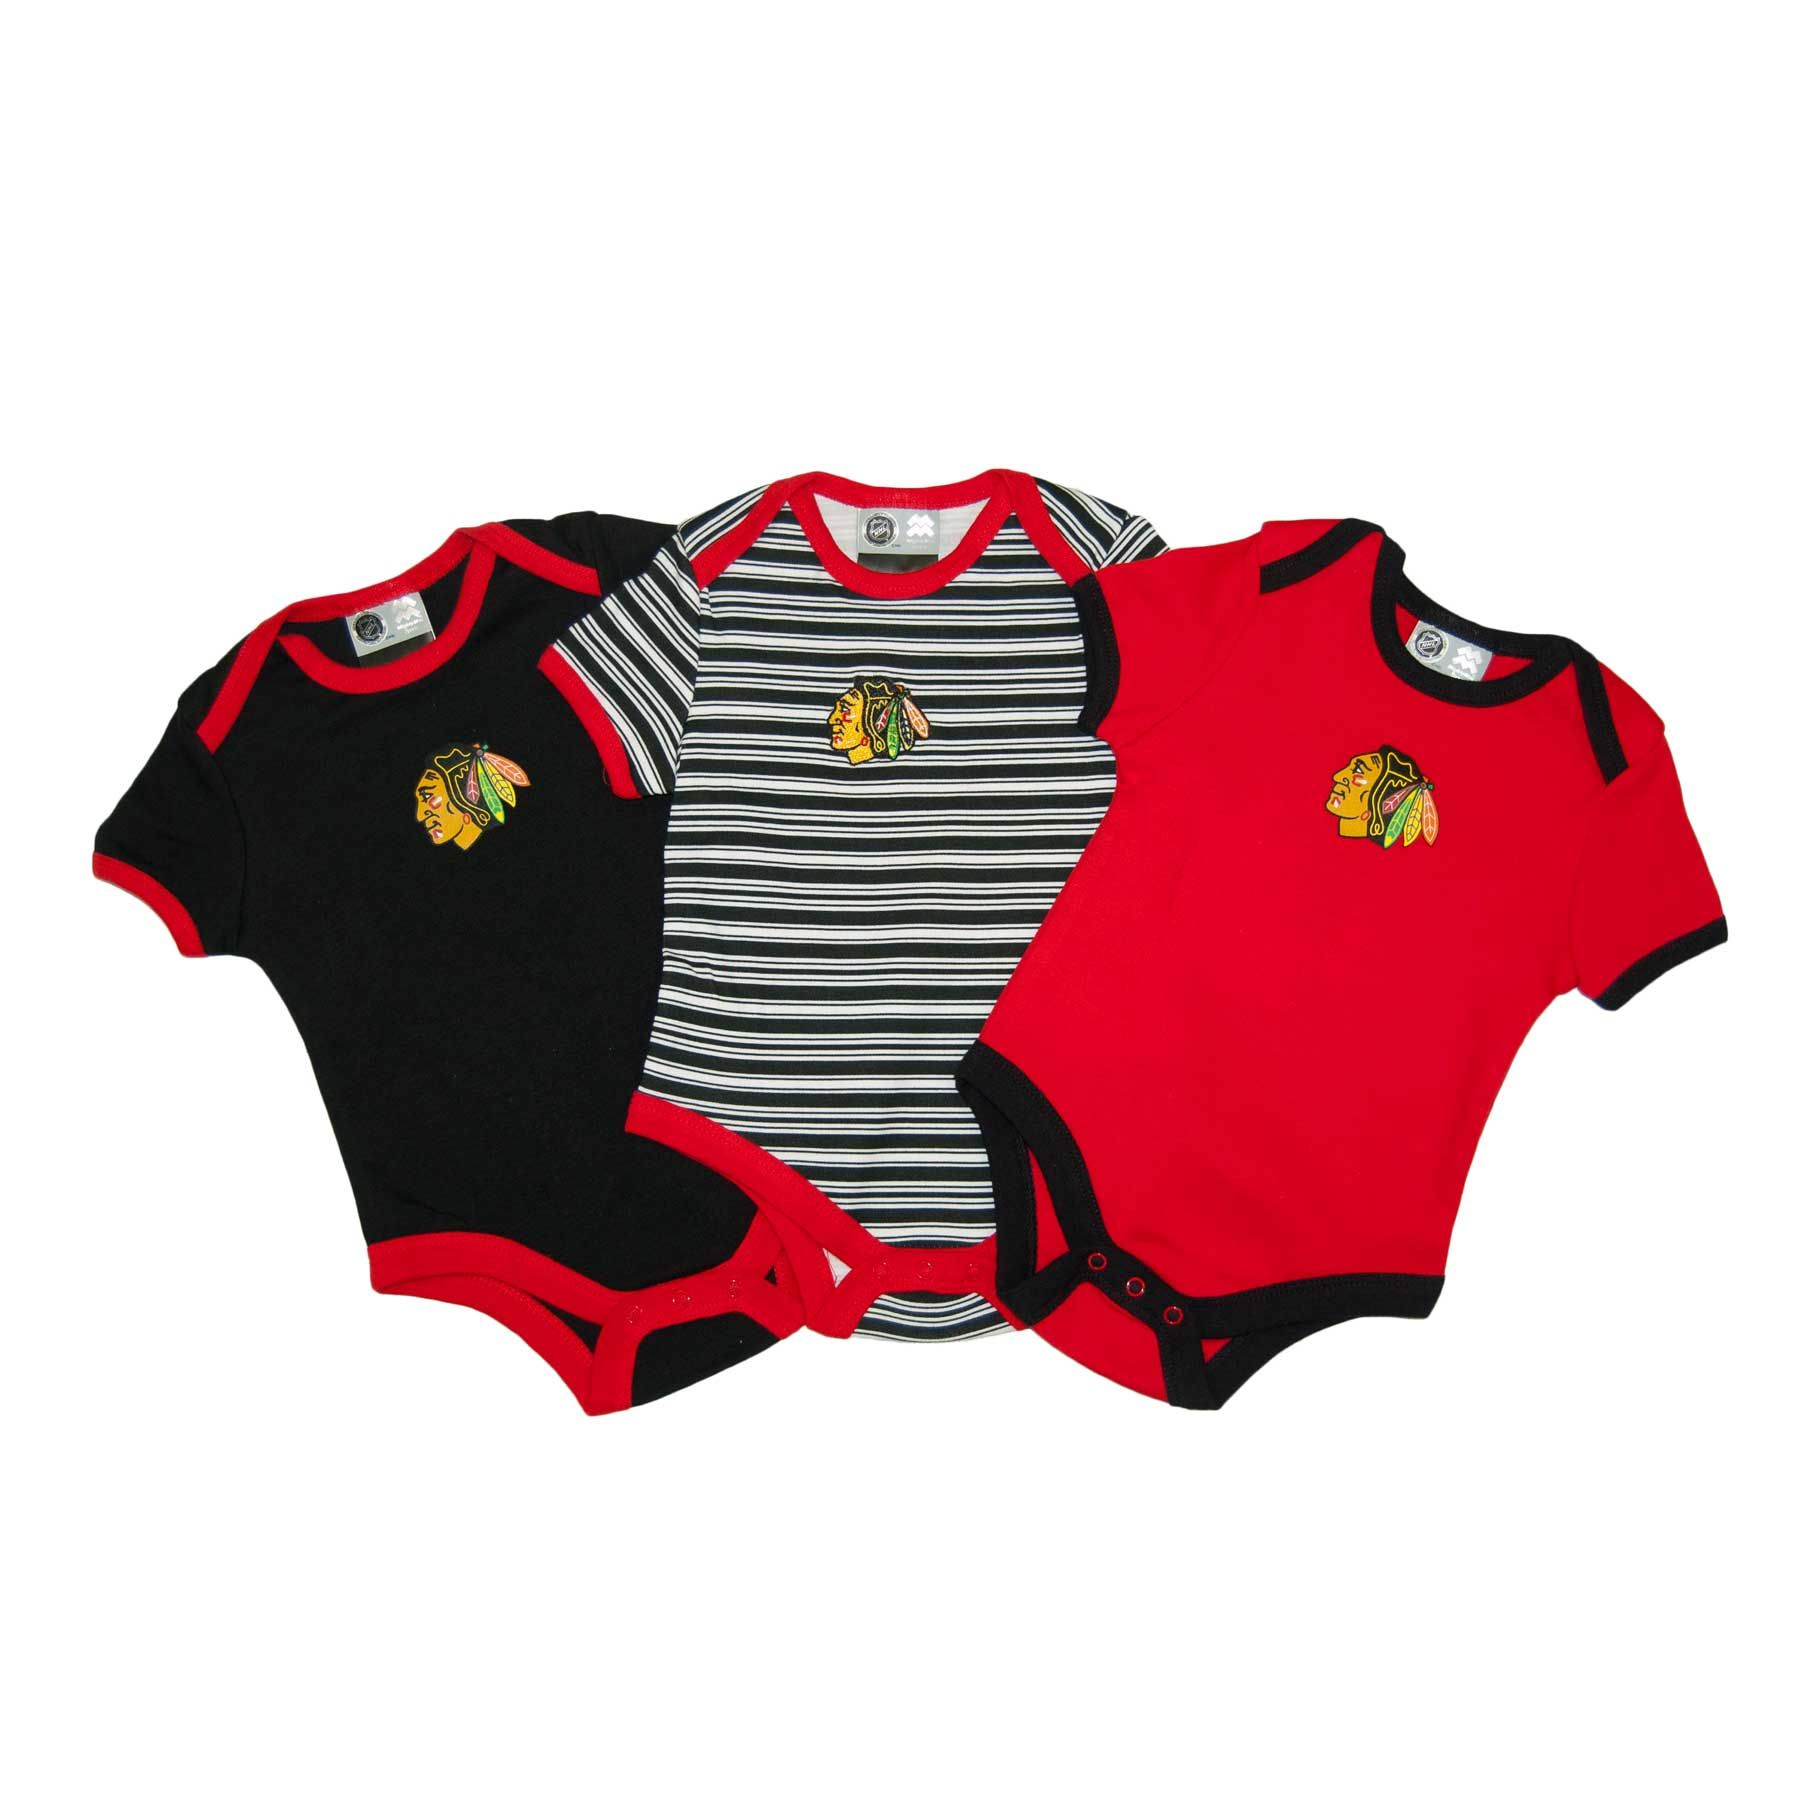 finest selection c2fb4 407a0 Chicago Blackhawks Baby 3-pc Solid & Stripes Creeper Set ...